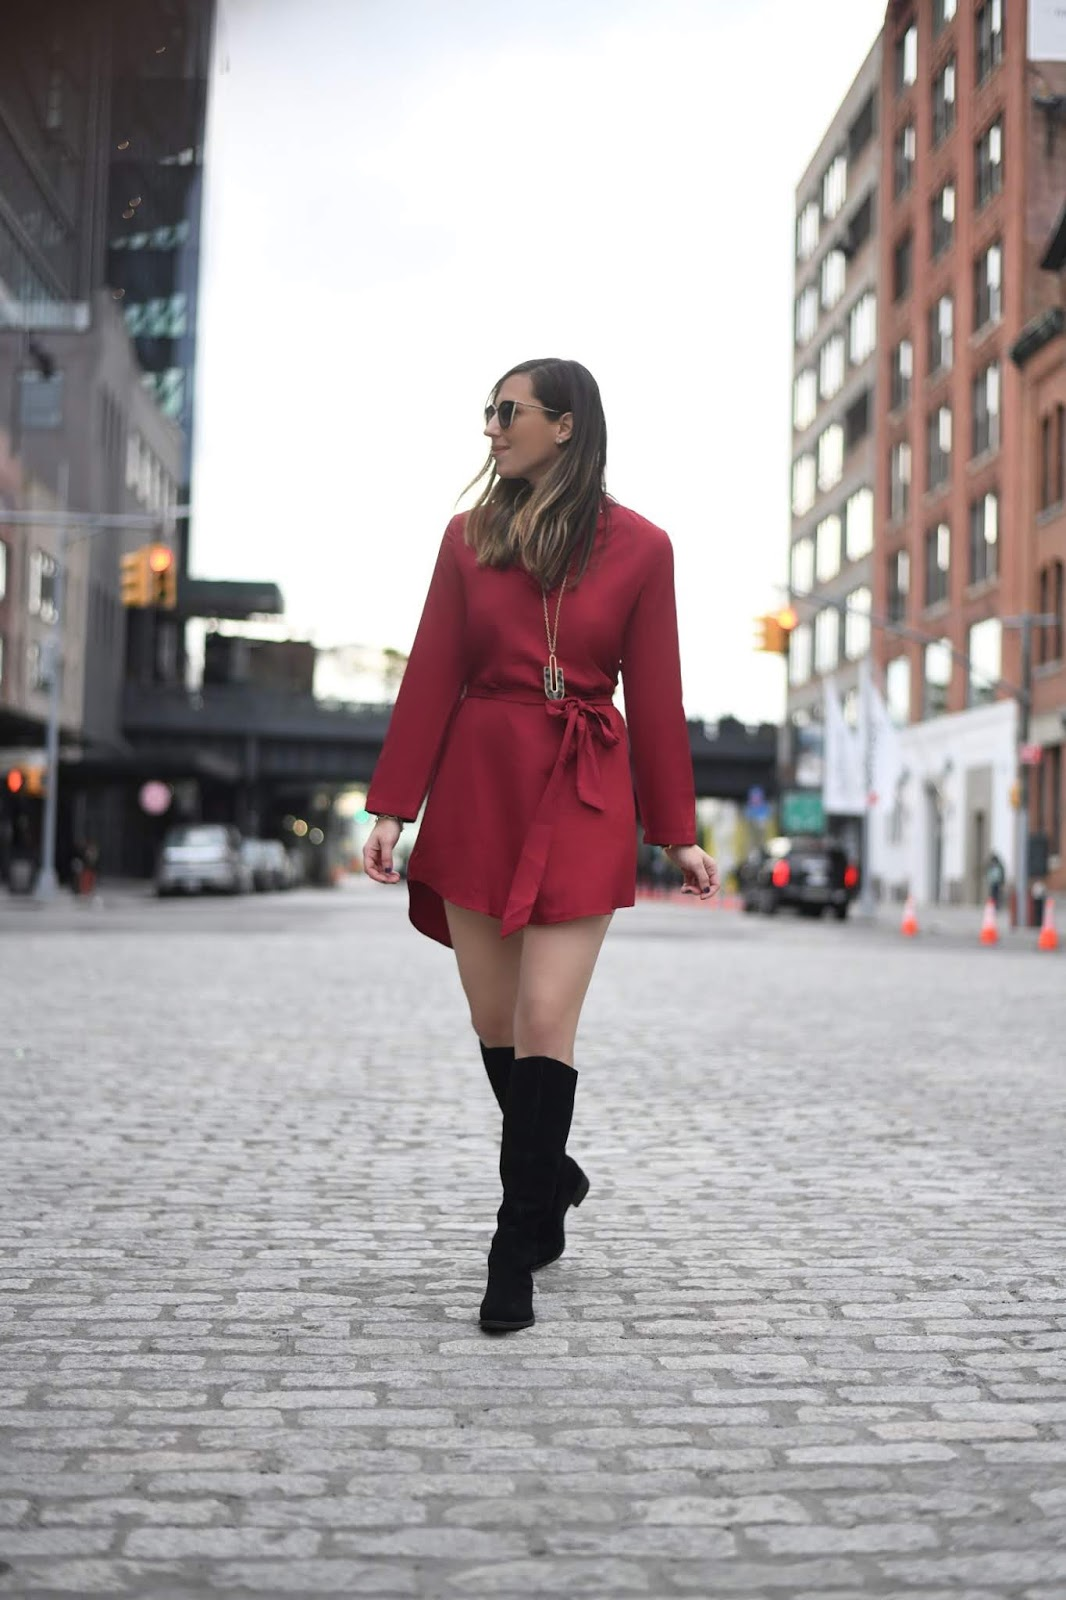 How to Style a Shirt Dress & Where to go in the Meatpacking District